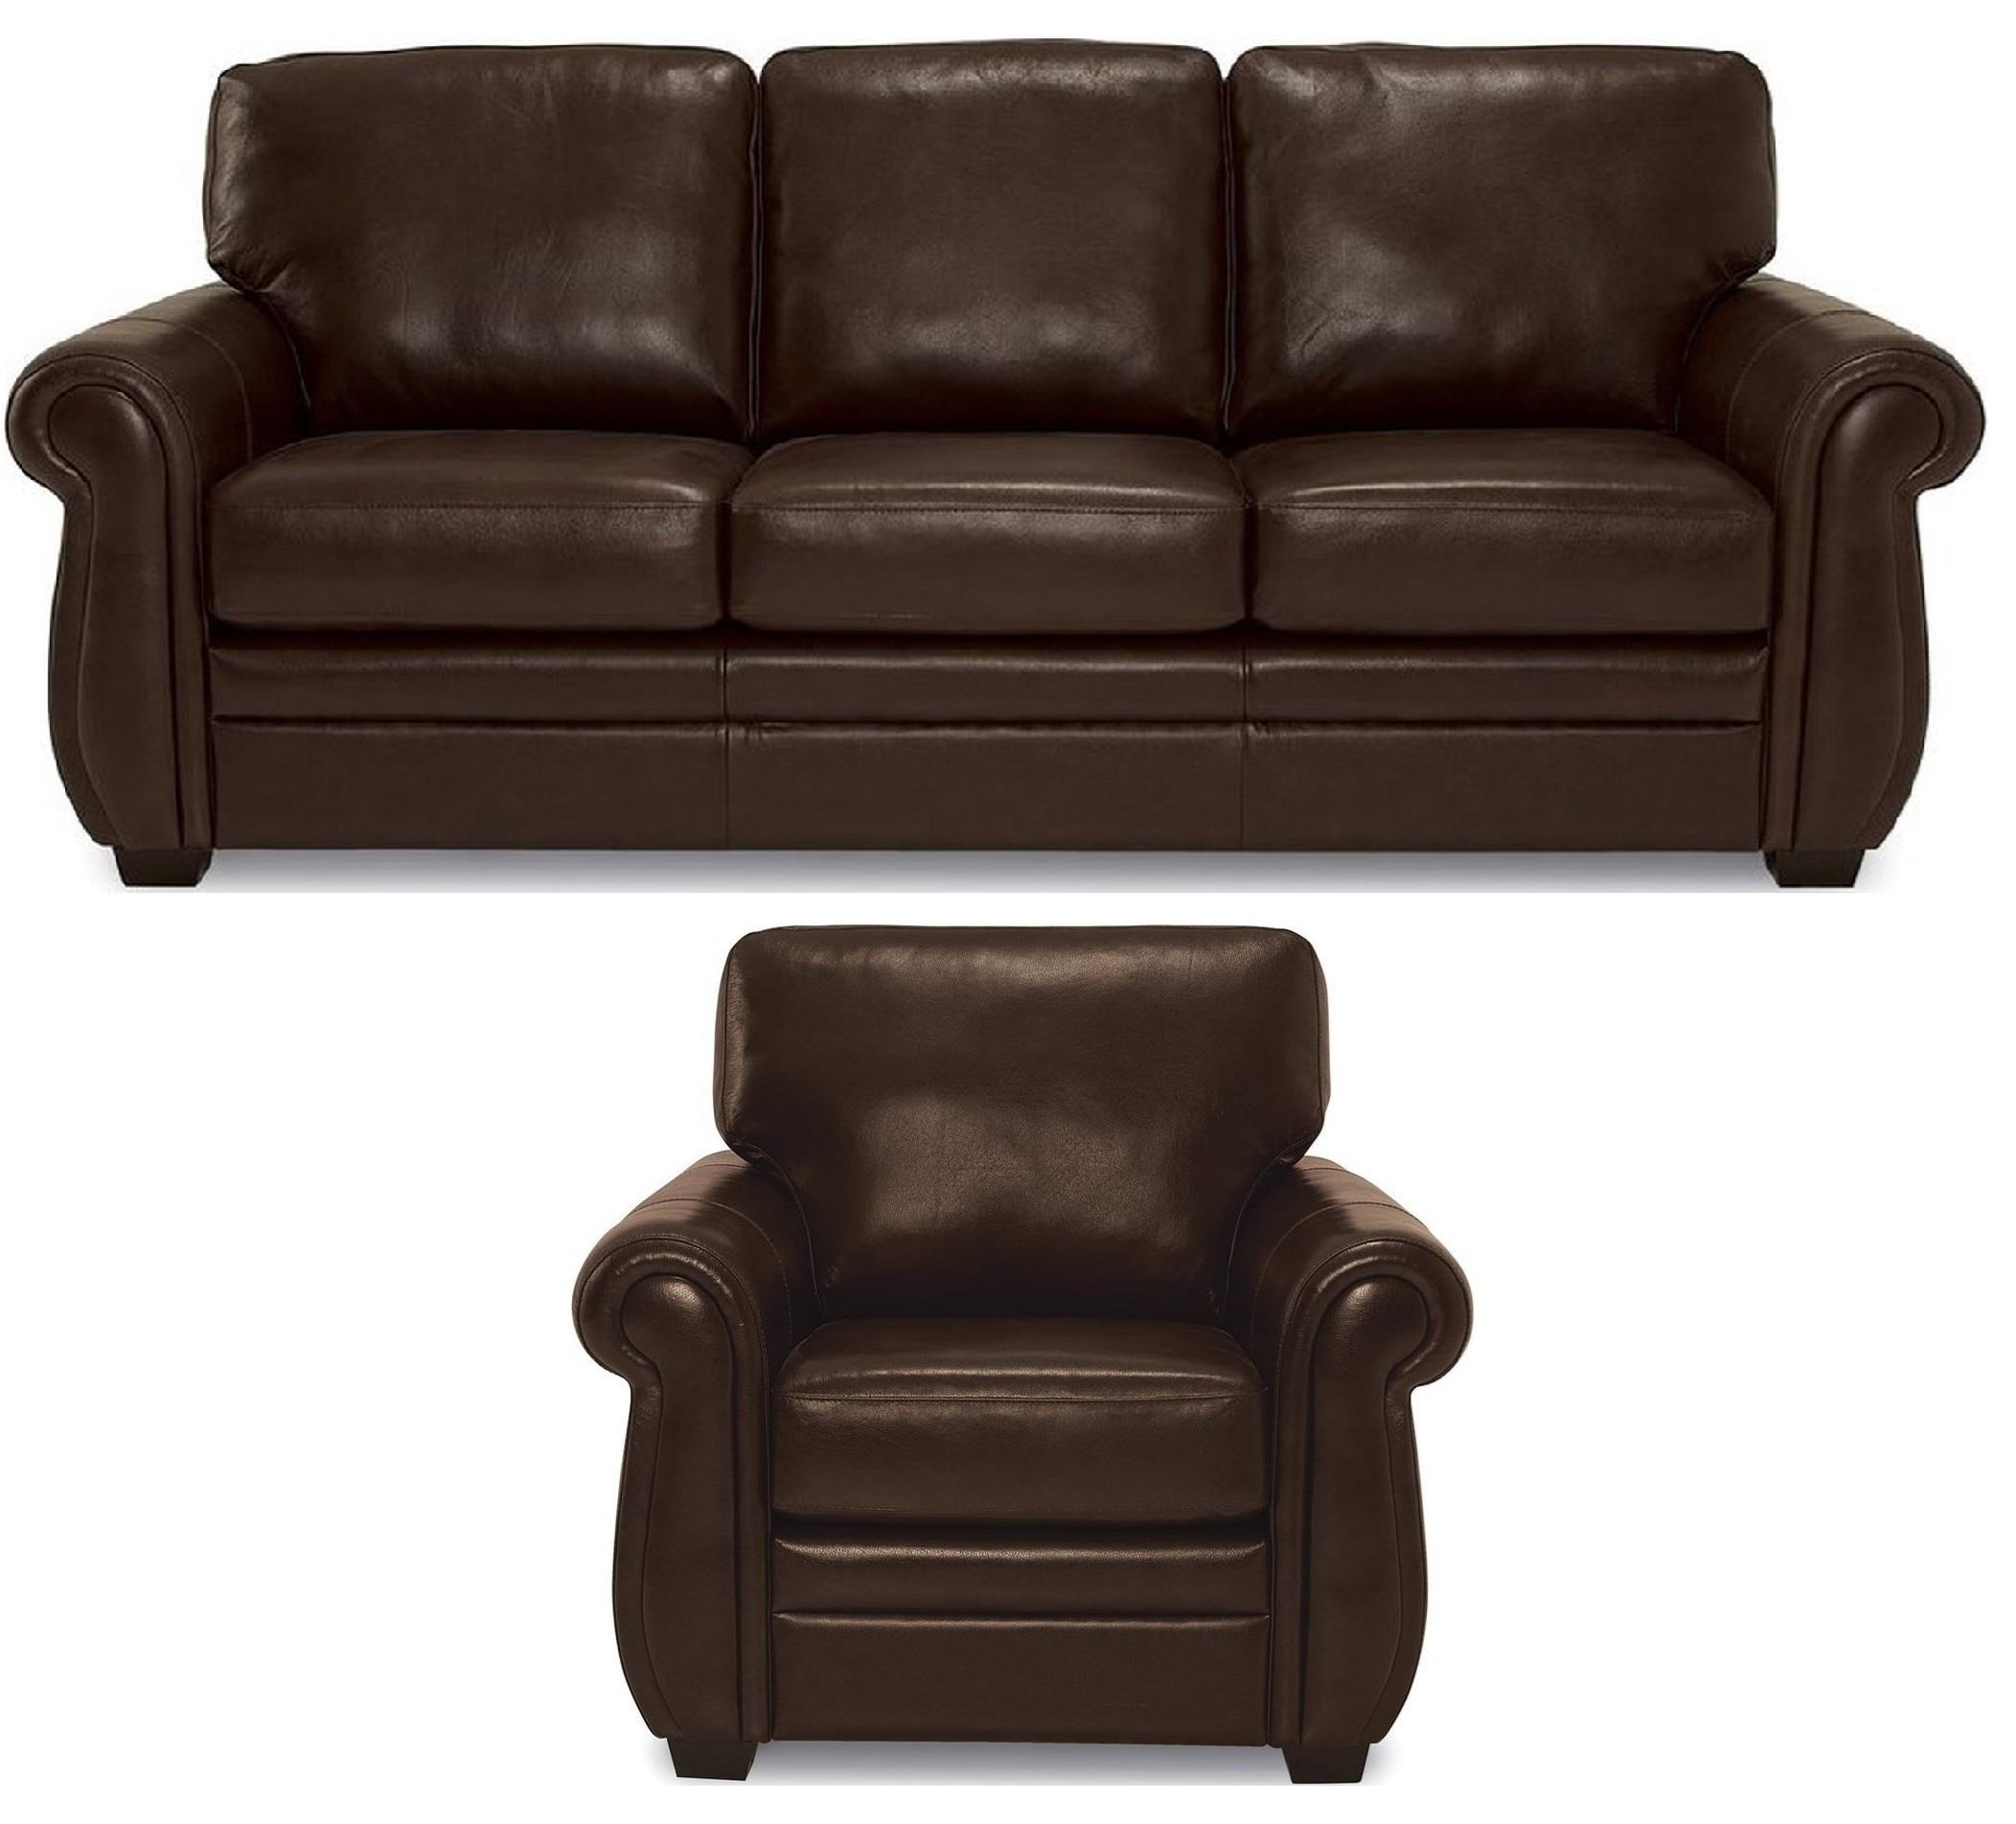 Parker II Leather Sofa & Chair by Rockwood at Bennett's Furniture and Mattresses